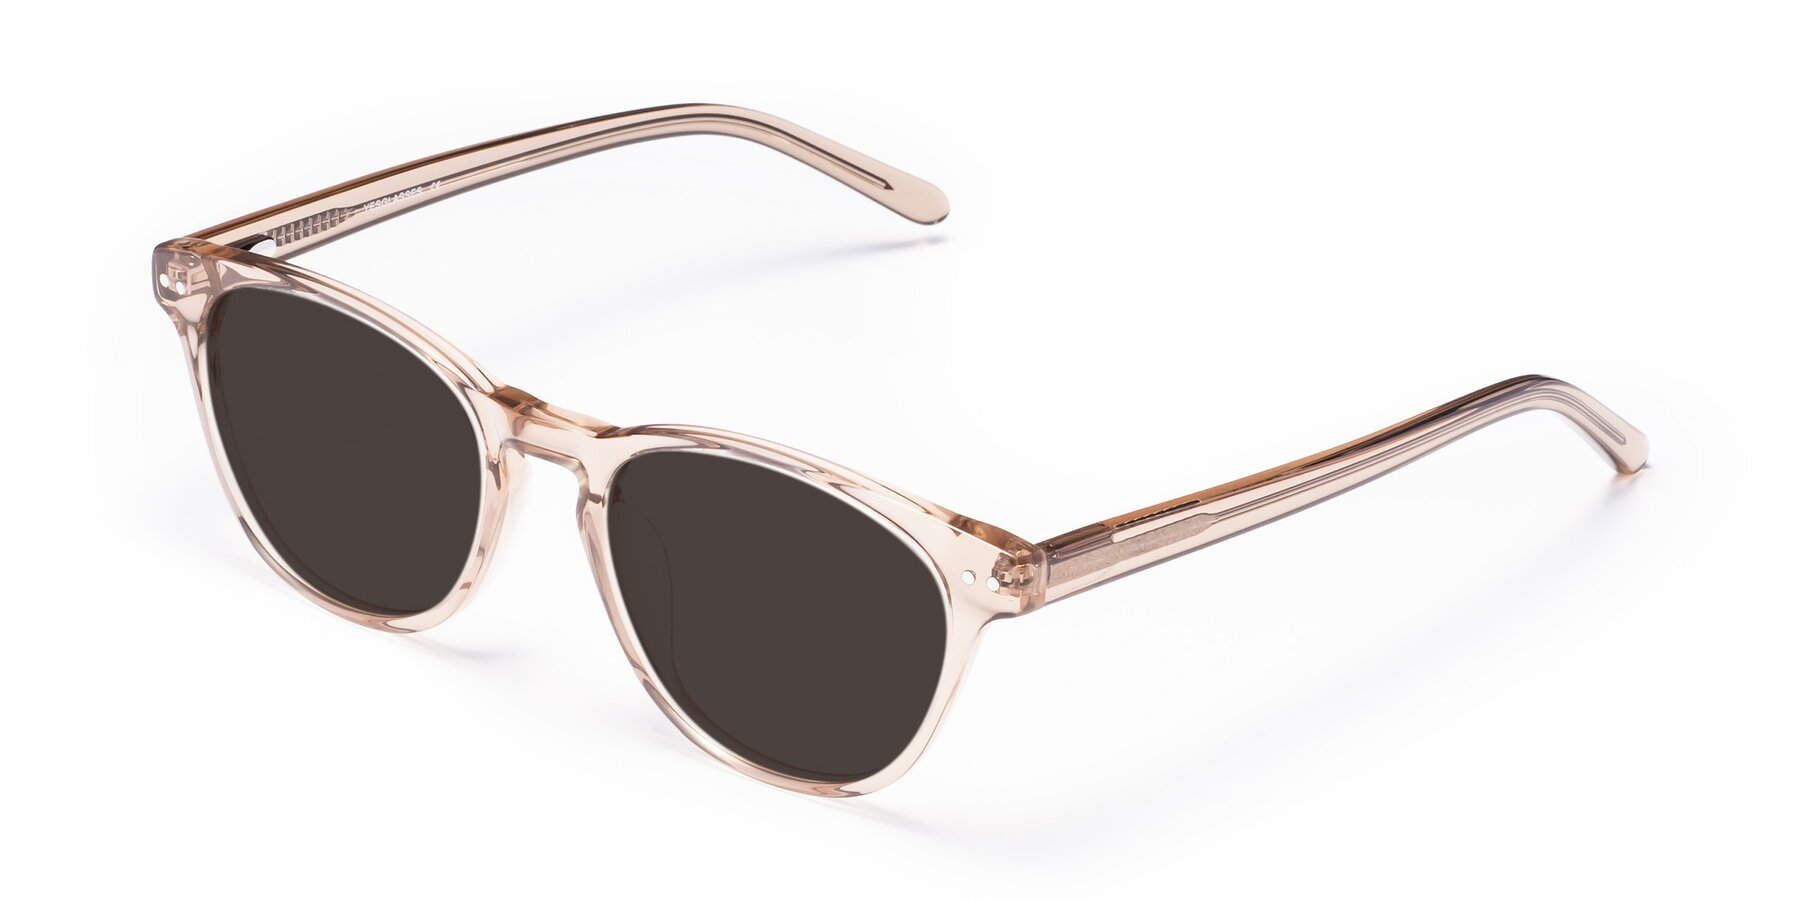 Angle of Blaze in light Brown with Gray Tinted Lenses